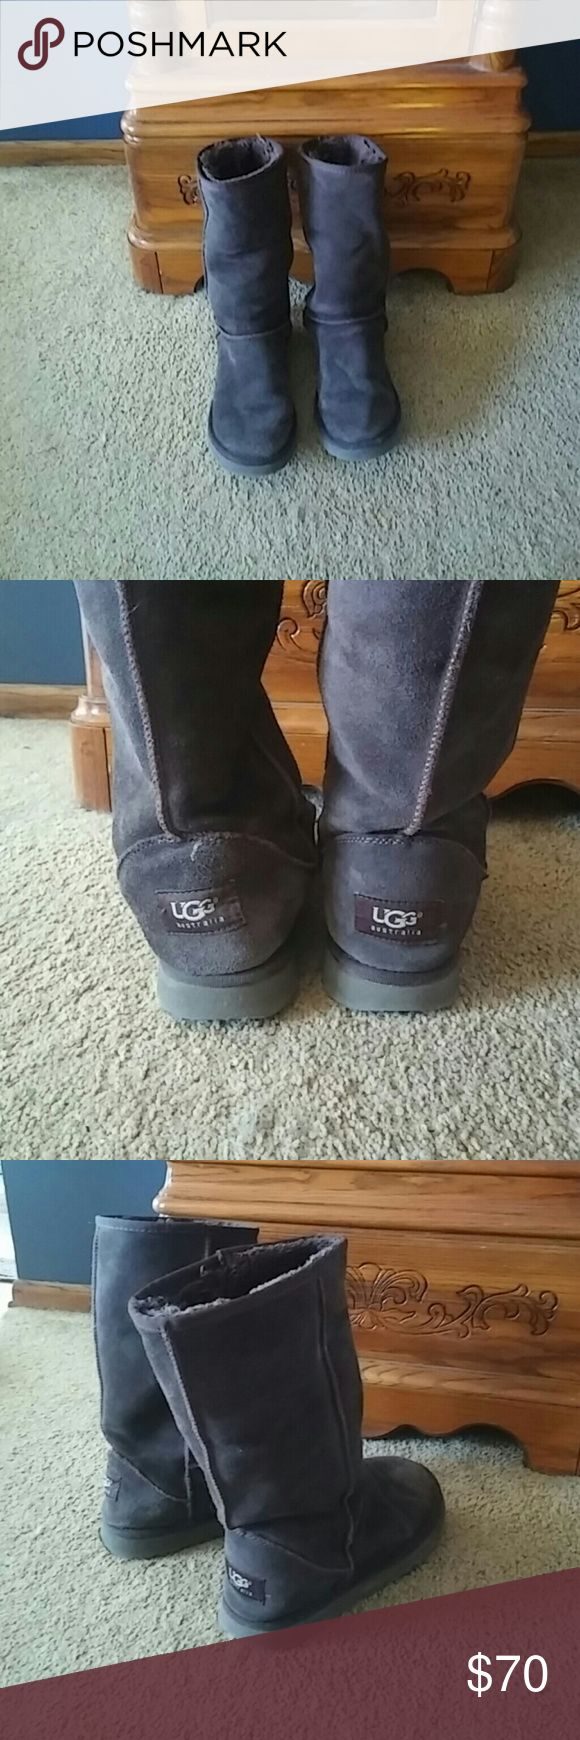 Brown, tall ugg boots size 7 Size 7 brown, tall ugg boots. Only worn a few times and are in great condition! No holes, scuffs or rips. They are a bit big on me so I never wear them. Open to reasonable offers!  ?No trades and no returns? UGG Shoes